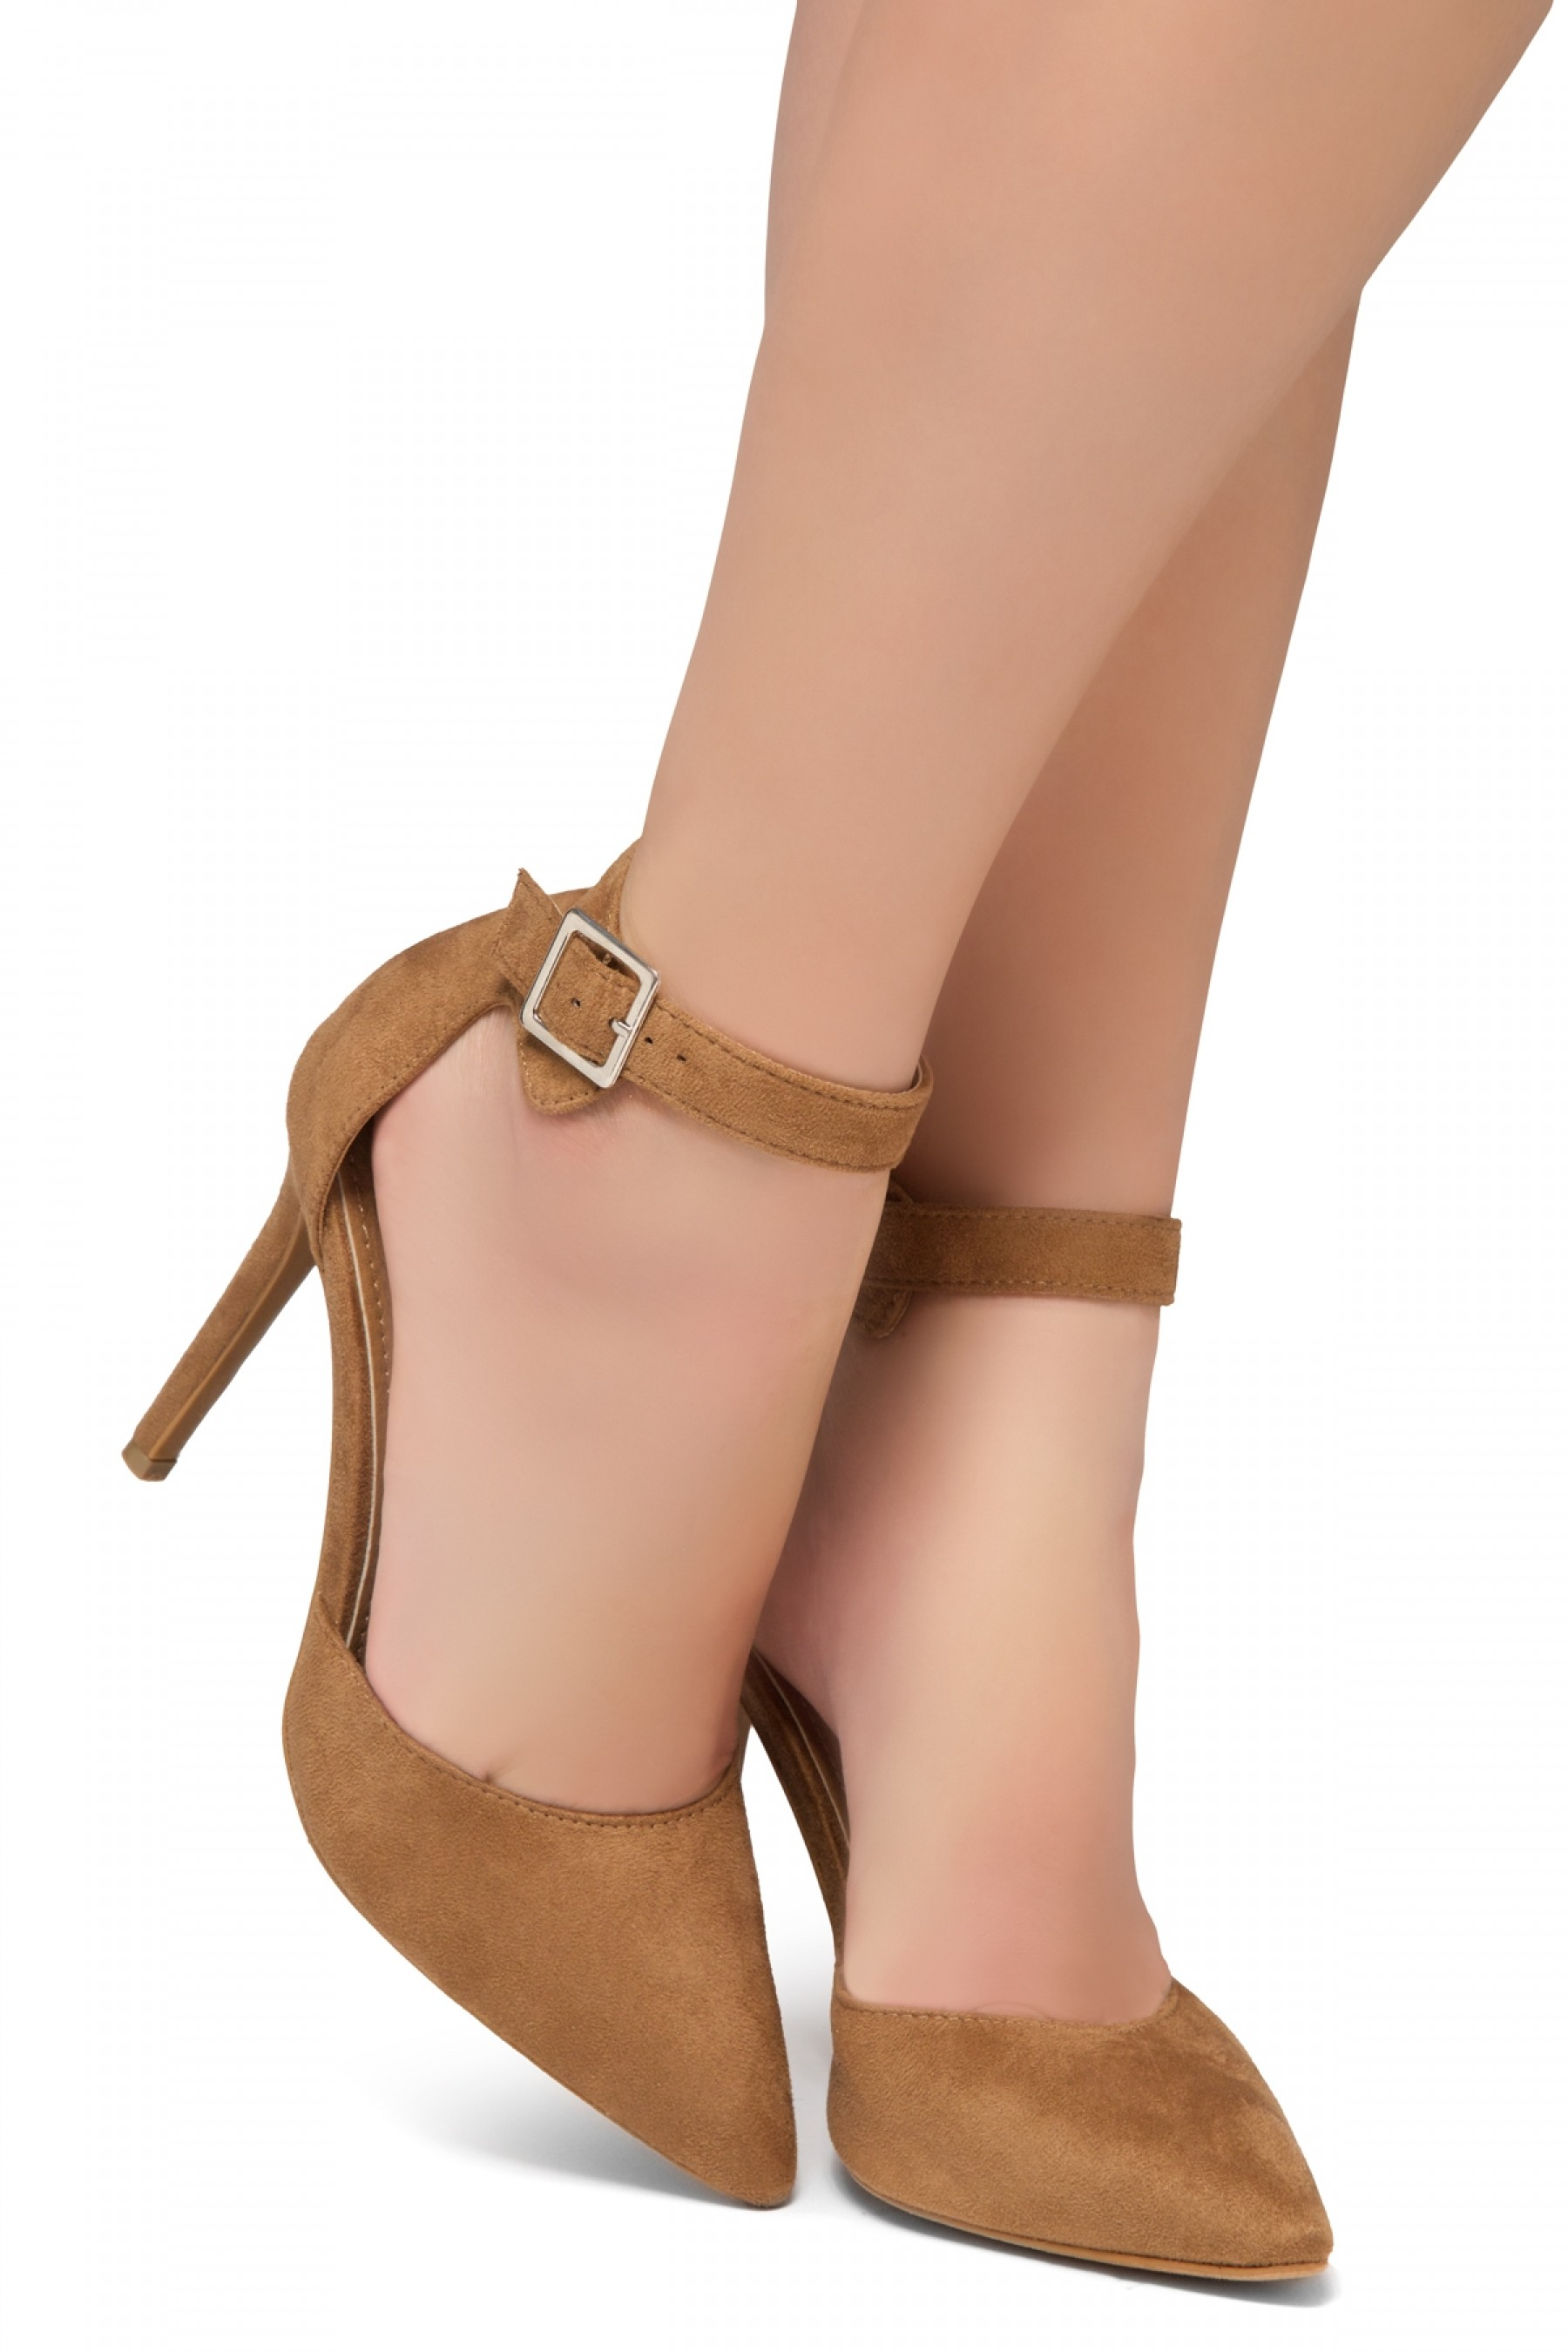 Shoe Land Marneena-2-Ankle Strap Squared Buckle Close Pointed Toe Stiletto Heel Pumps (Taupe)